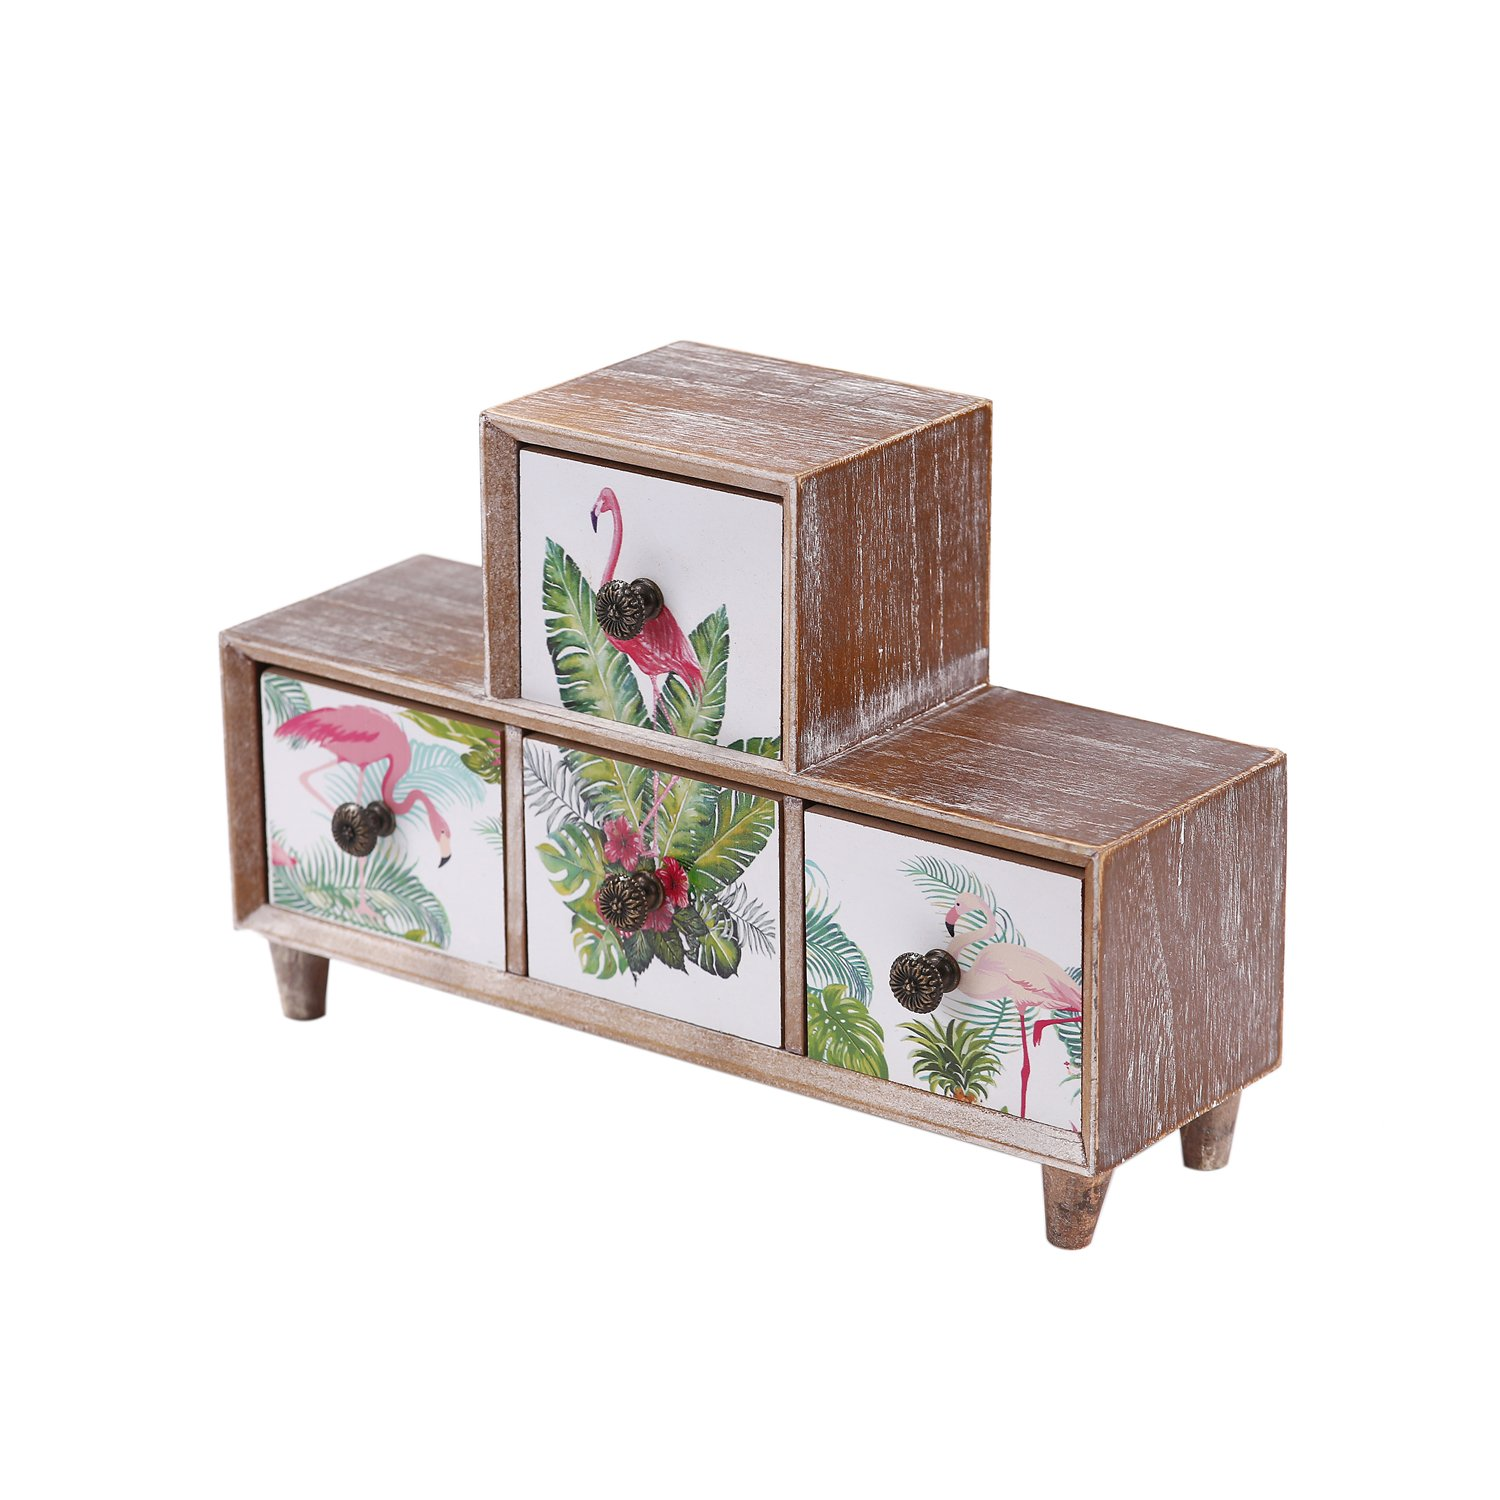 Flamingos Chest of Drawers,4 Drawer Wooden Mini Desk Storage Decorative Jewellery Box Storage Cabinet Vintage Shabby Chic Style for Home and Office,11.8(L) x 3.54(W) x 7.87(H) inch Fayre Ware KT818